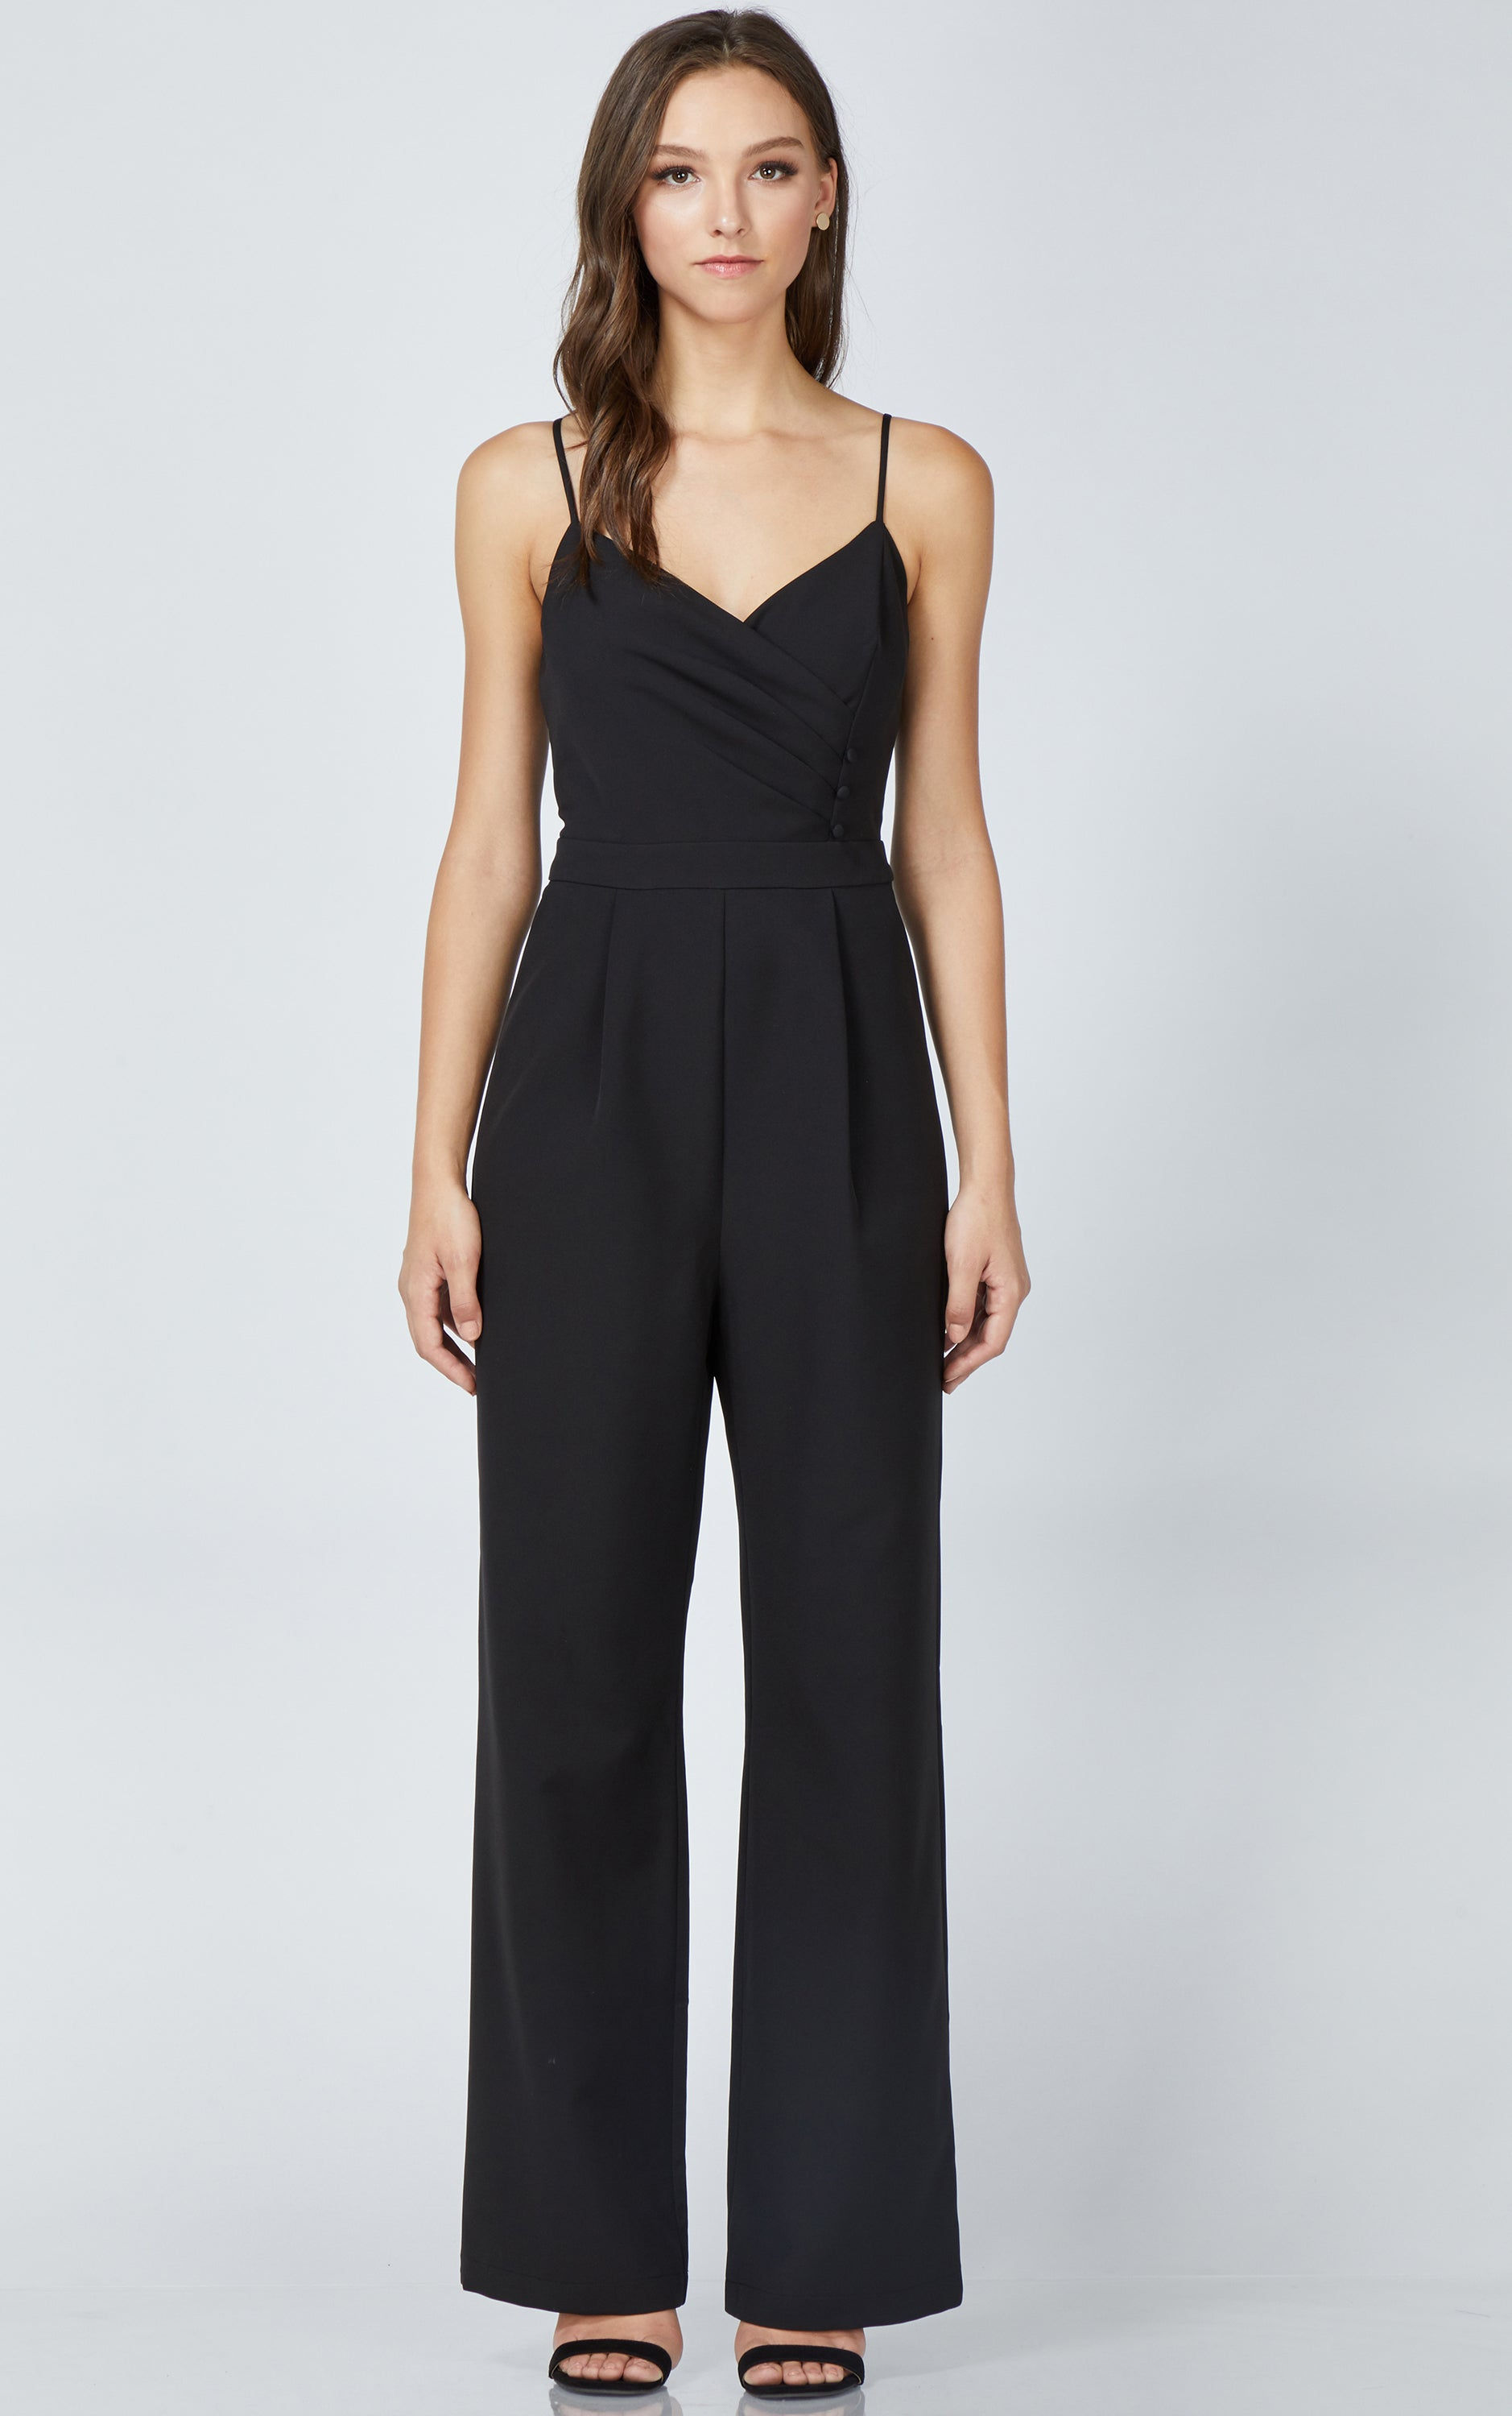 women's black sleeveless jumpsuit